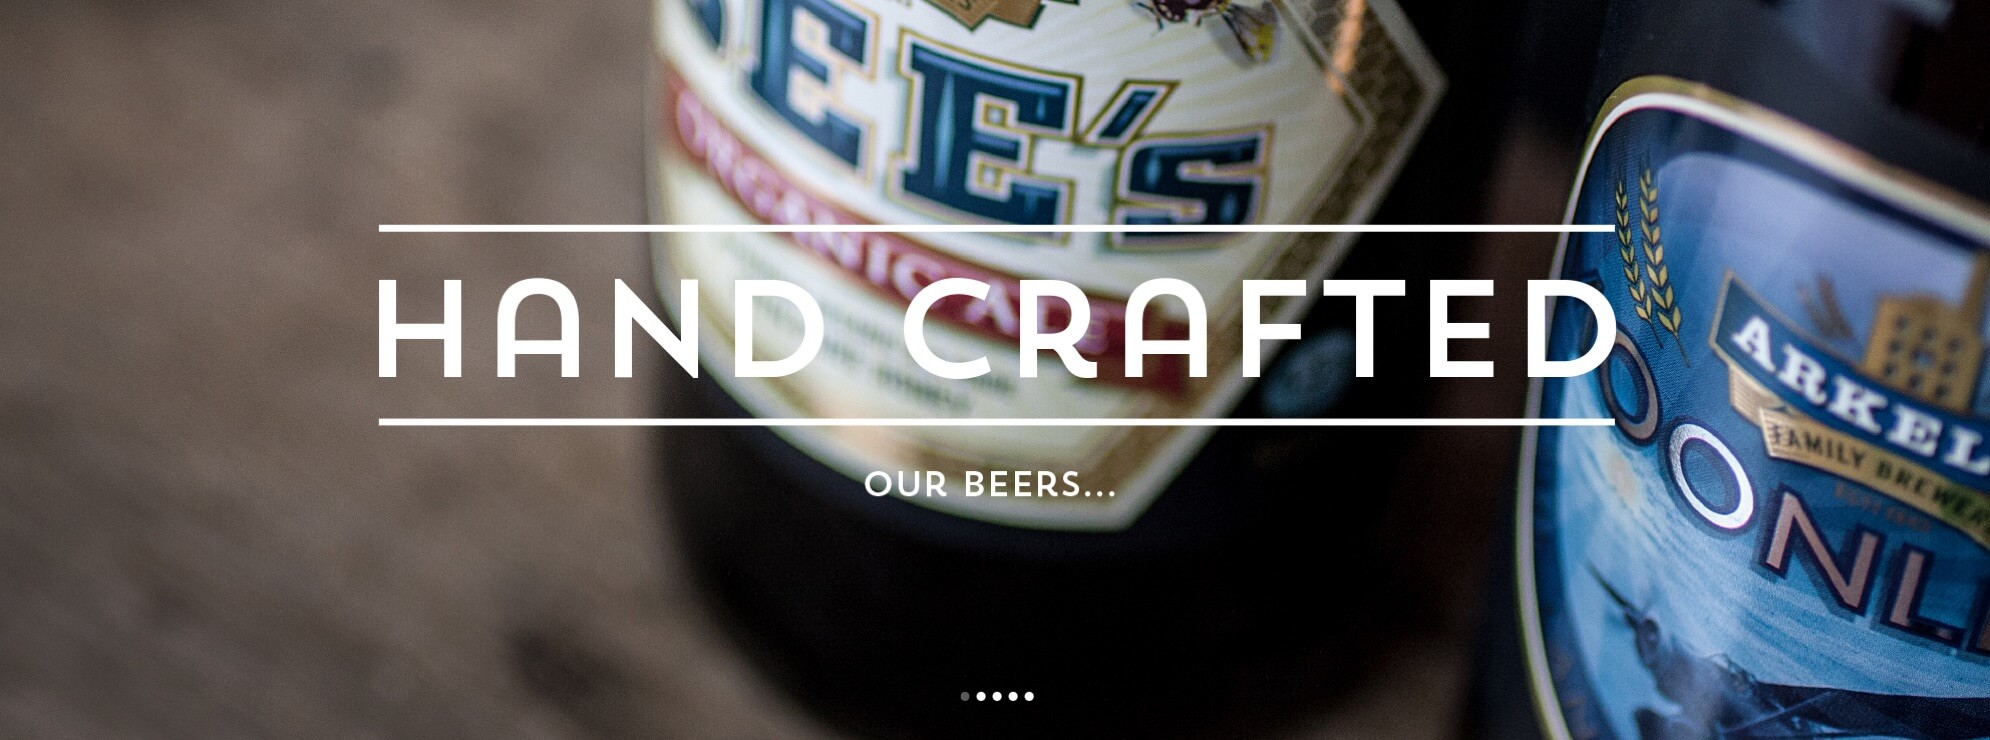 209e5d604d24 Arkell's Brewery, Swindon, Wiltshire. Family brewers since 1843 with ...